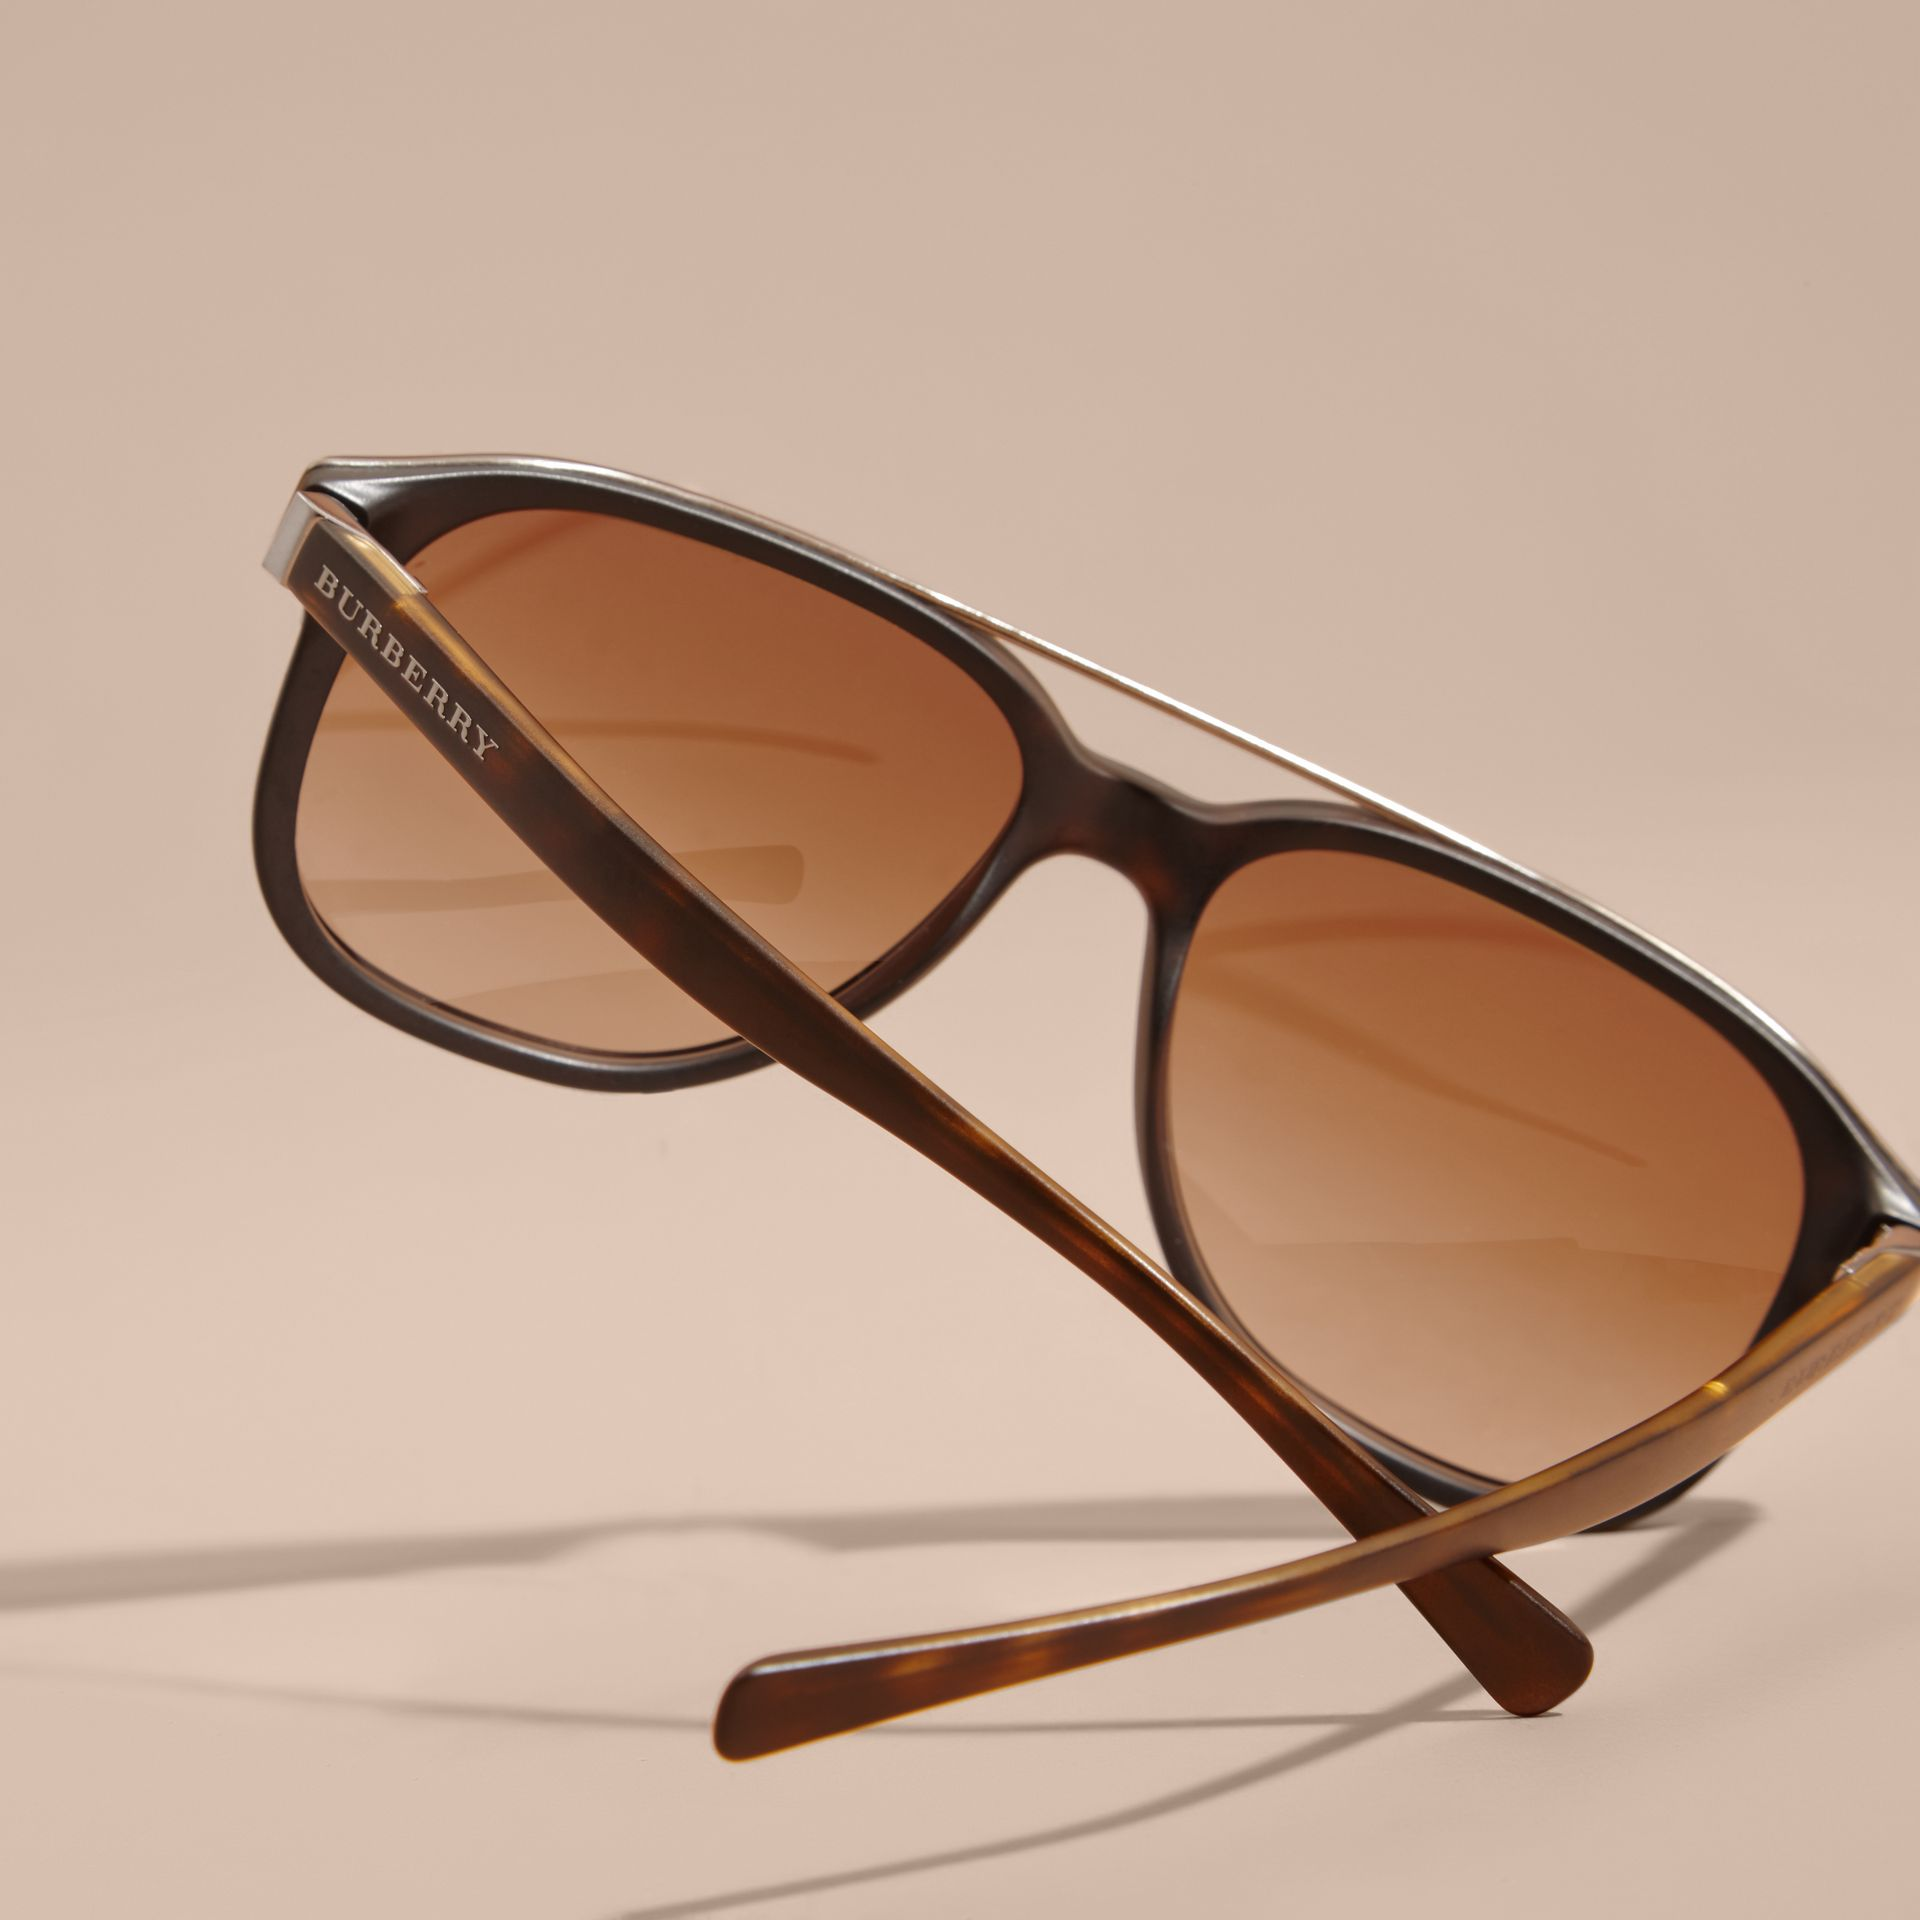 Square Frame Sunglasses in Tortoise Shell - Men | Burberry - gallery image 4